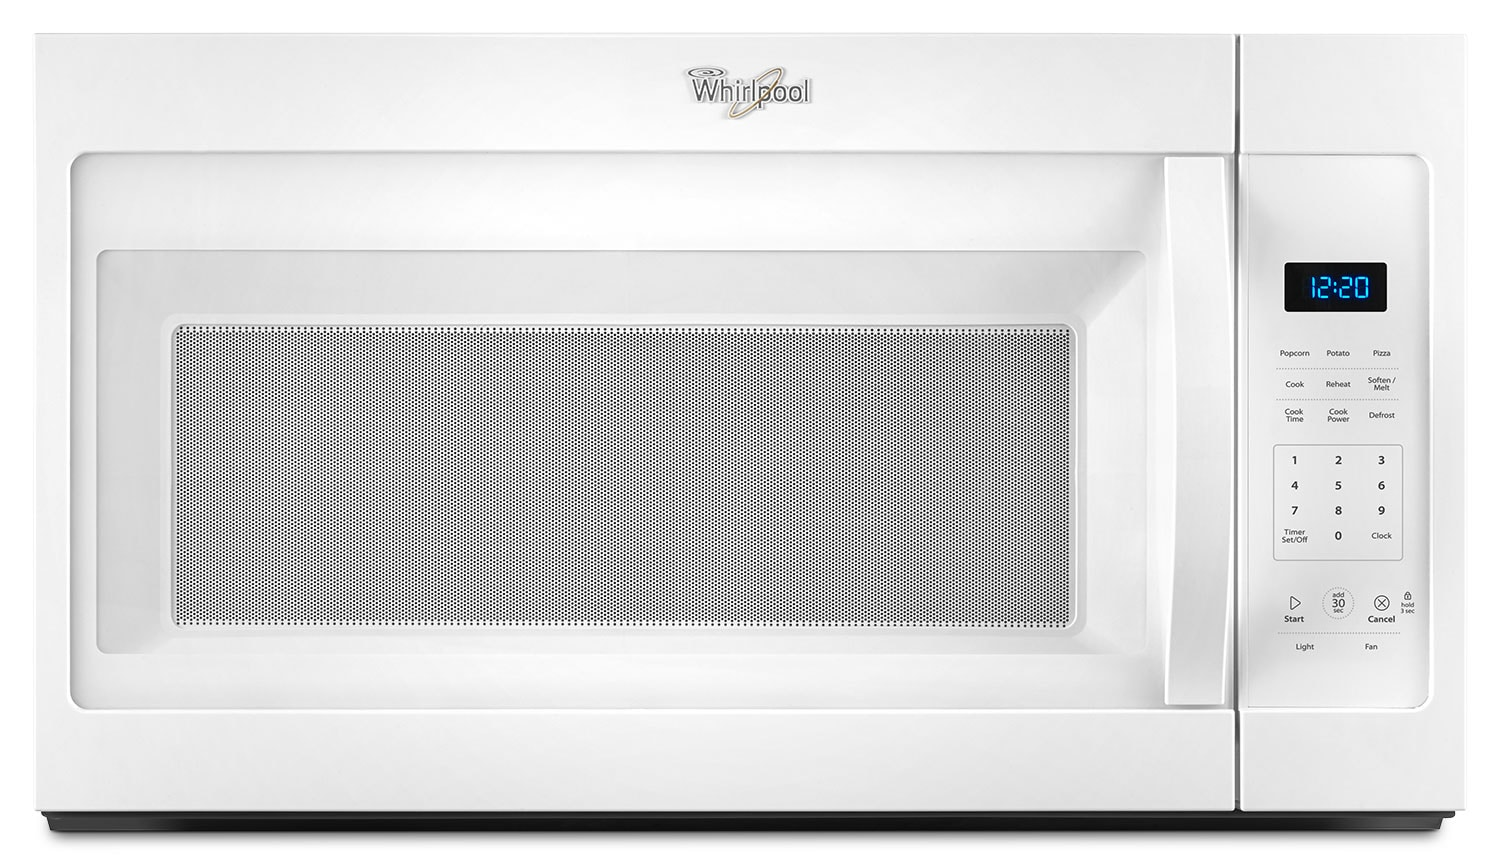 Cooking Products - Whirlpool White Over-the-Range Microwave (1.7 Cu. Ft.) - YWMH31017FW